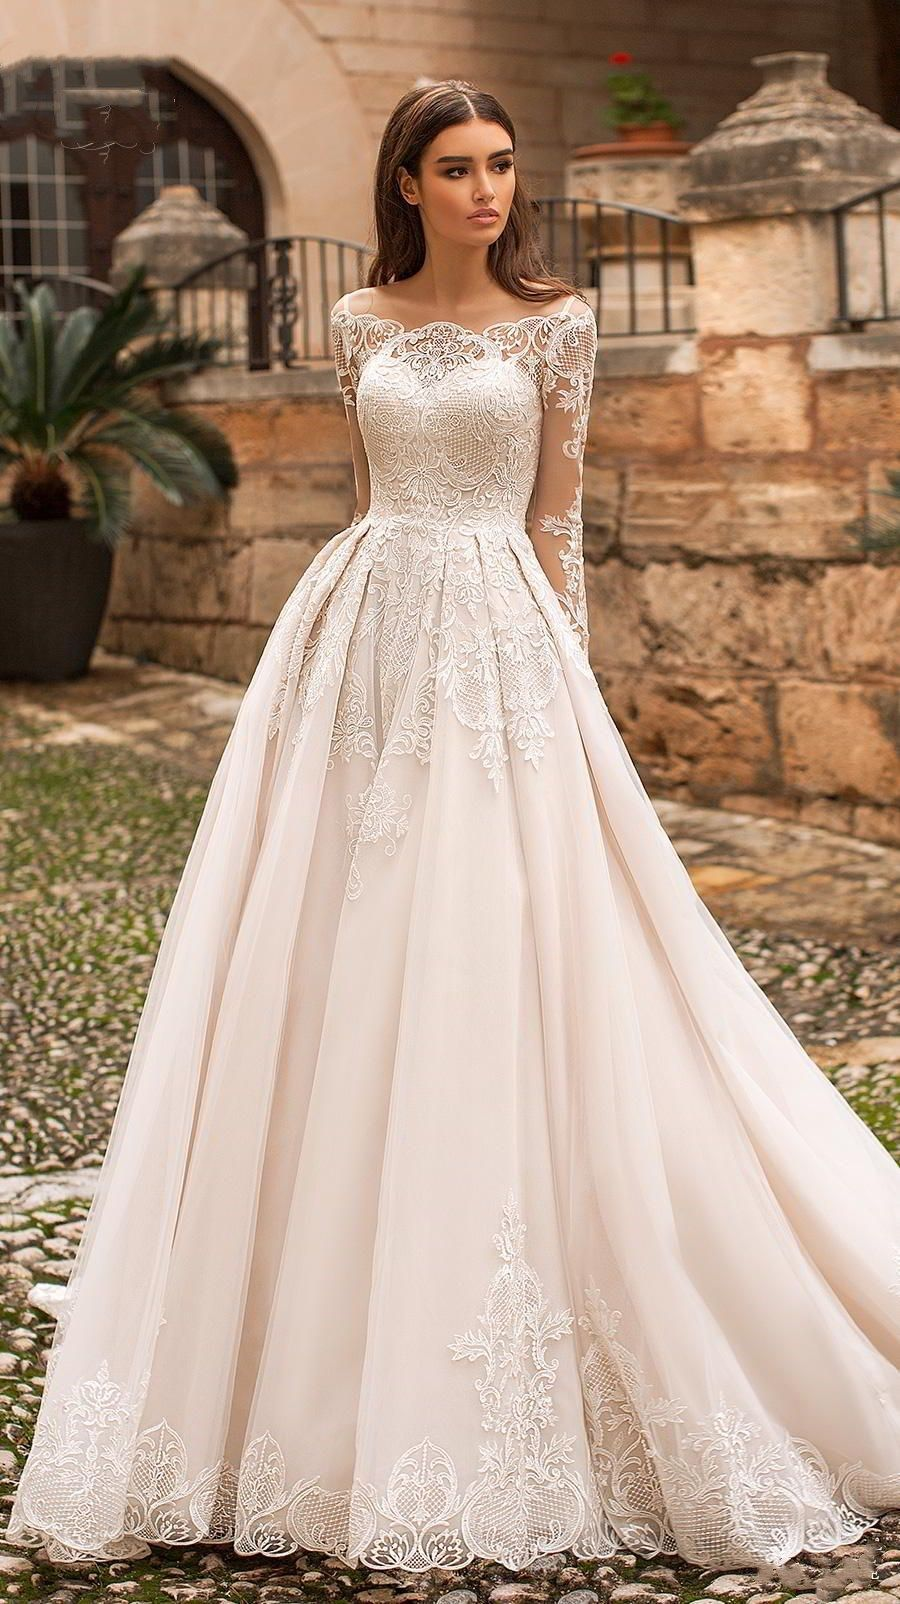 Best wedding dresses aliexpress  White Tulle Long Sleeves Wedding Dress With AppliquesRound Neck